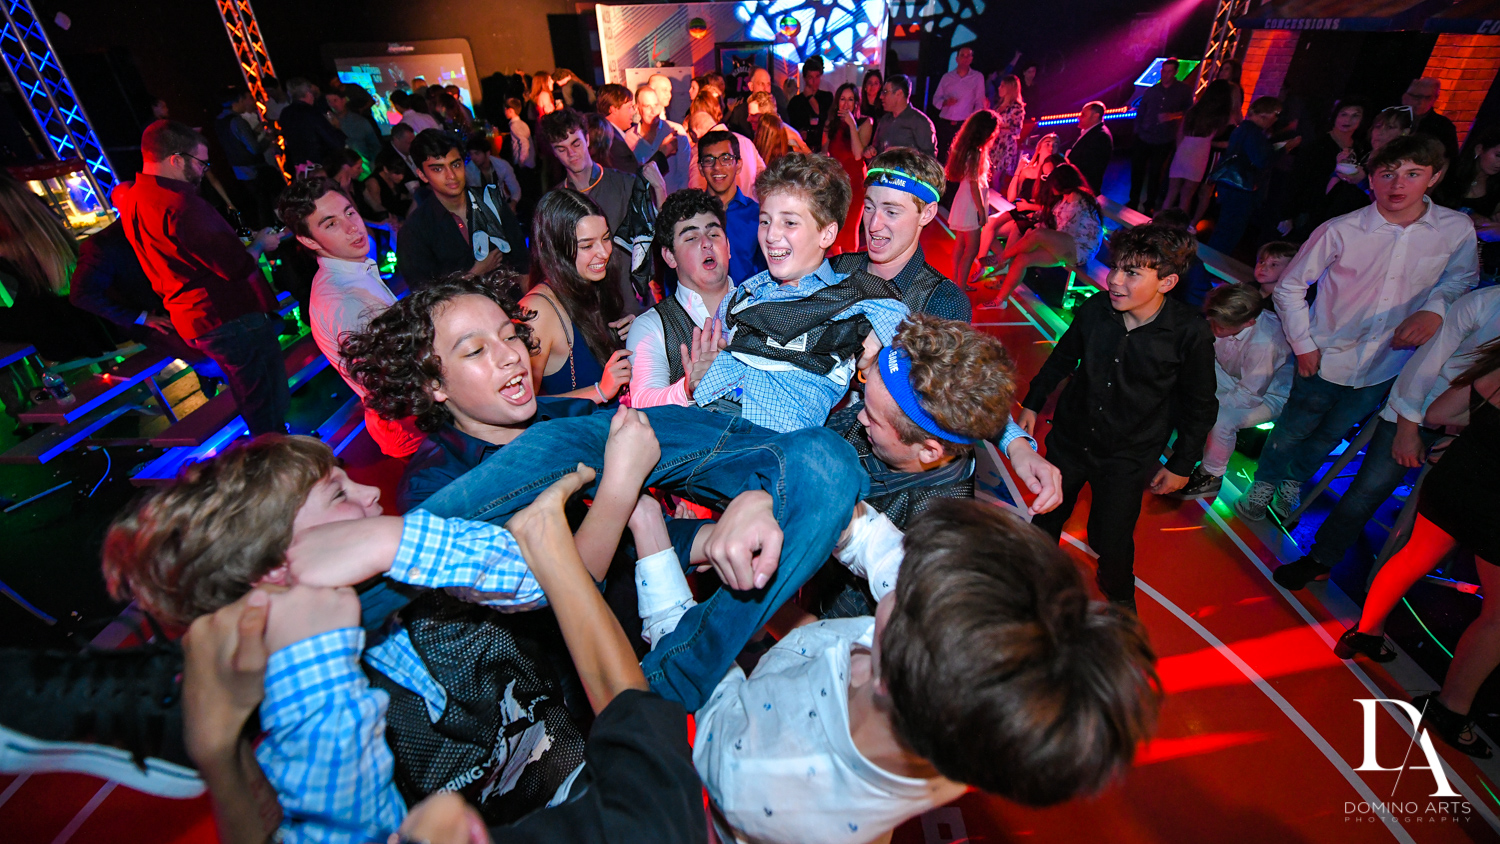 Best party at Fun Basketball Theme Bar Mitzvah at The Fillmore Miami Beach by Domino Arts Photography